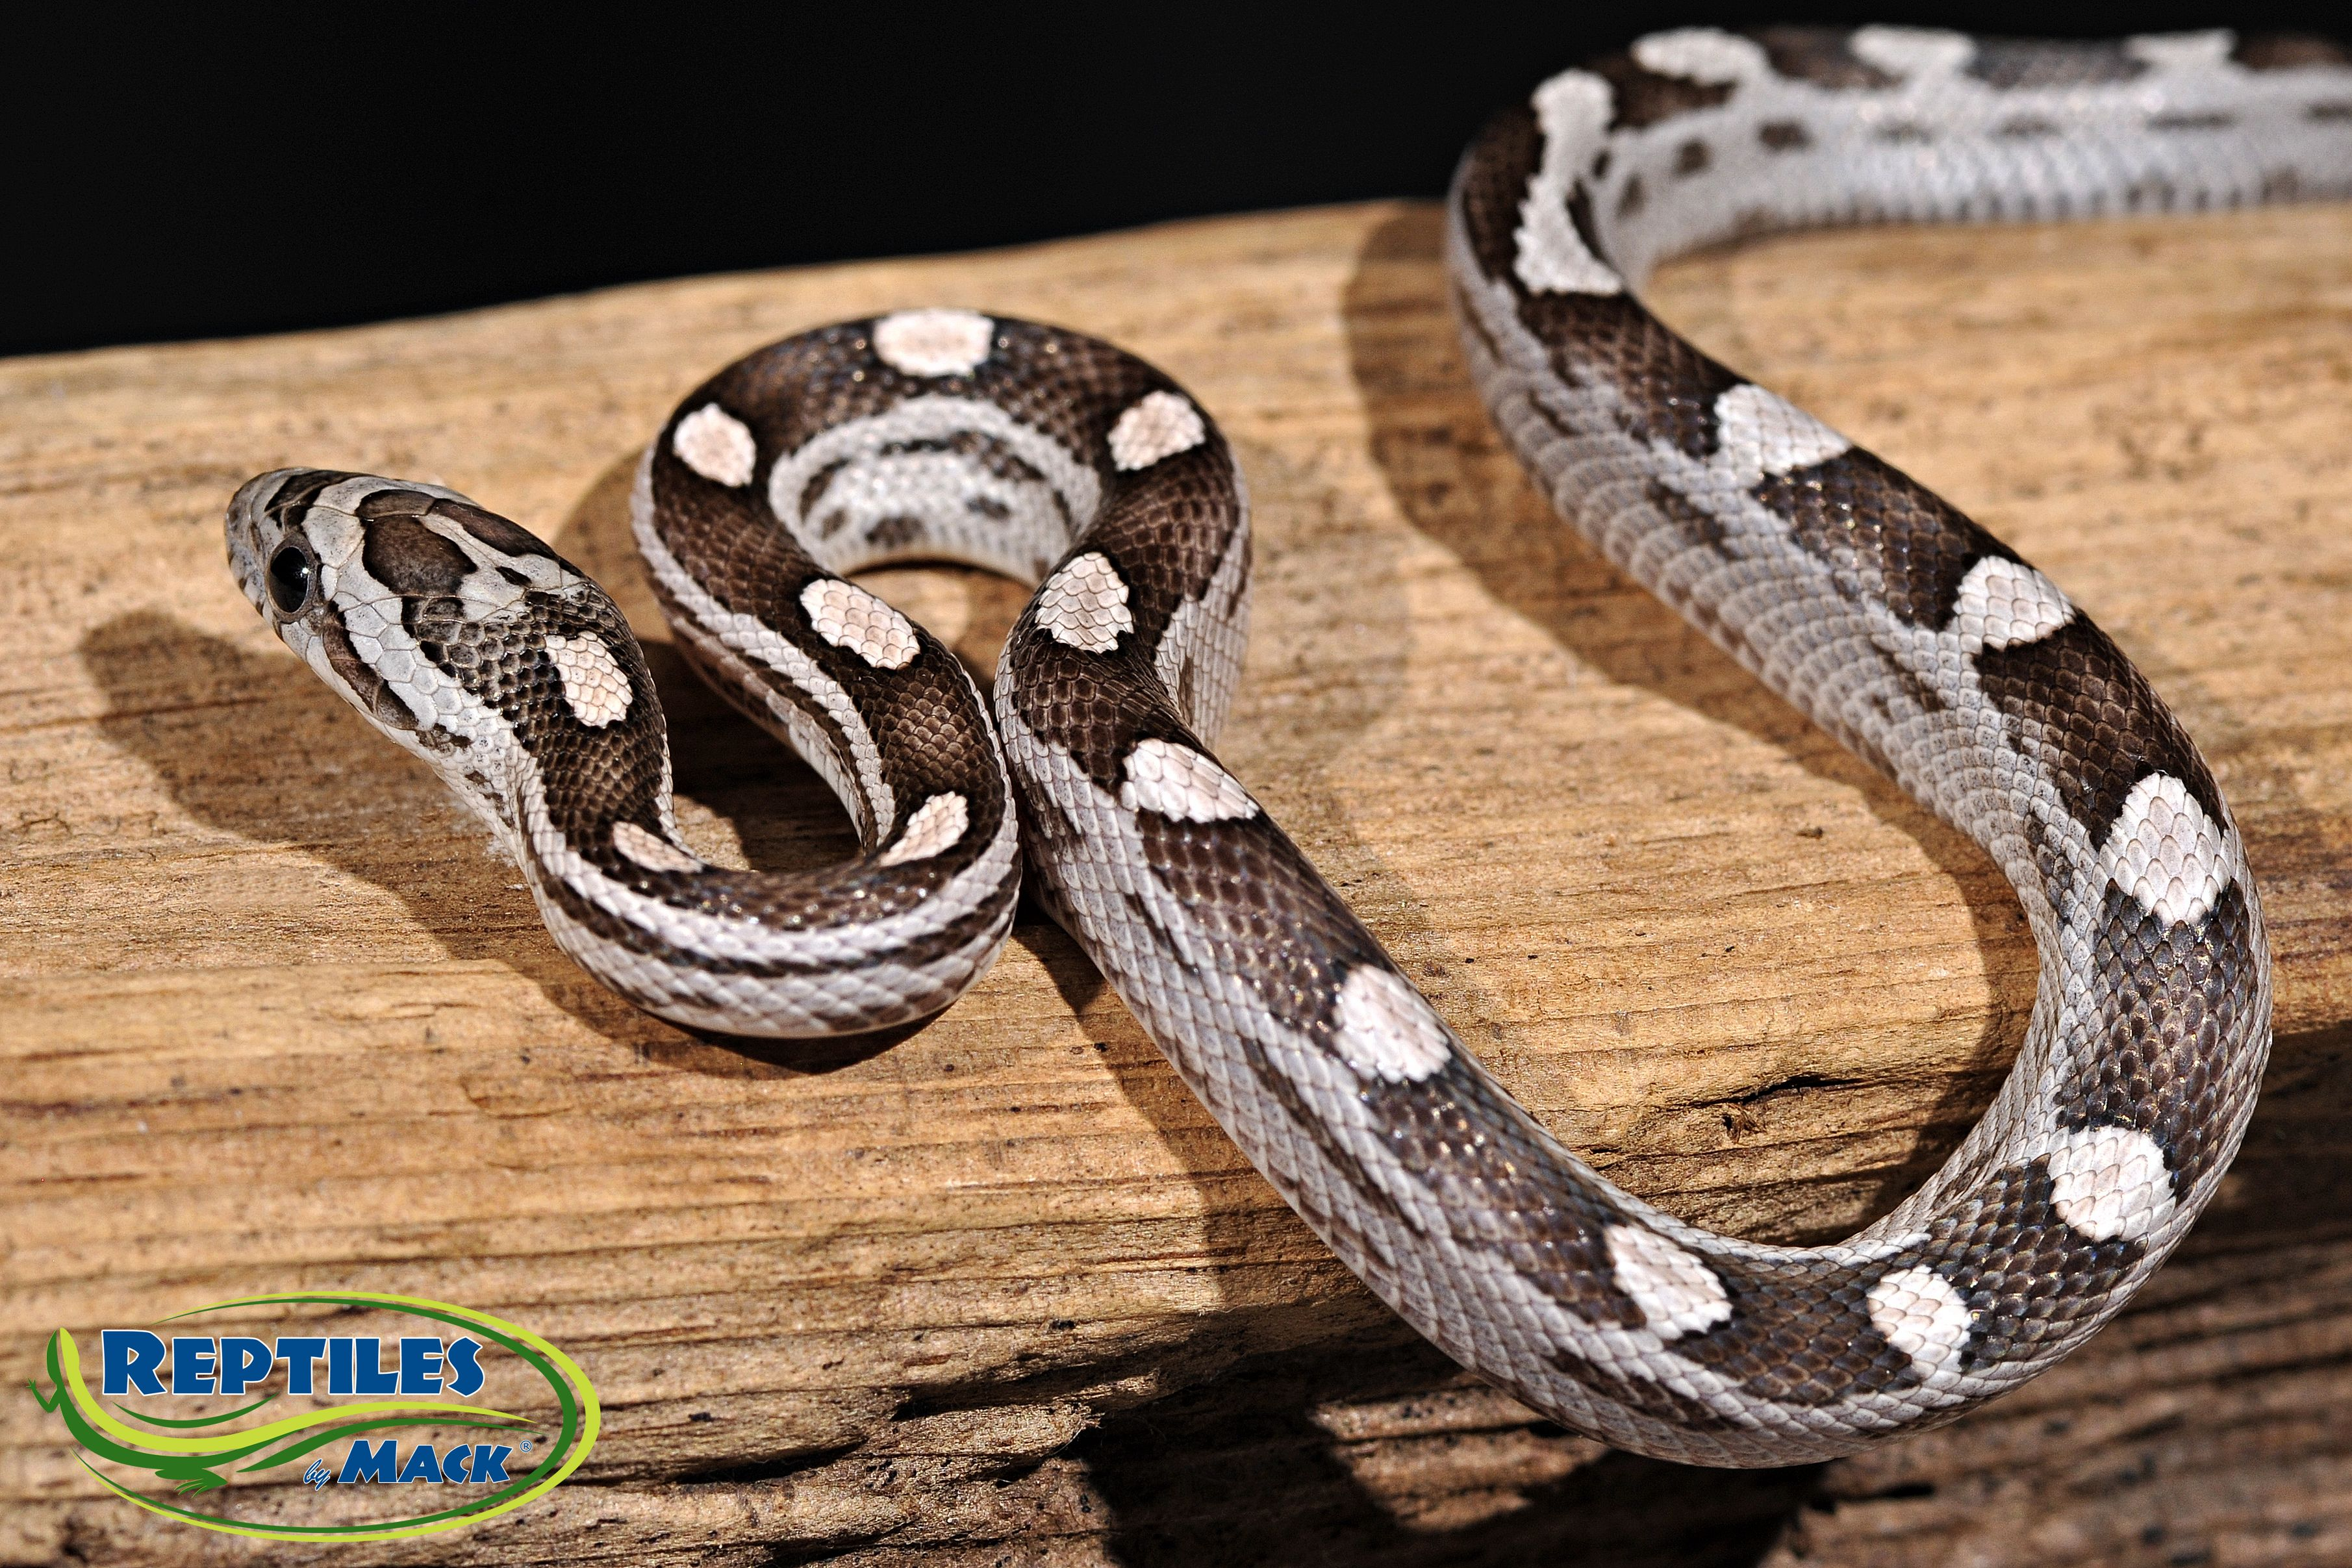 Black Motley Corn Snakes for Sale at Reptiles by Mack